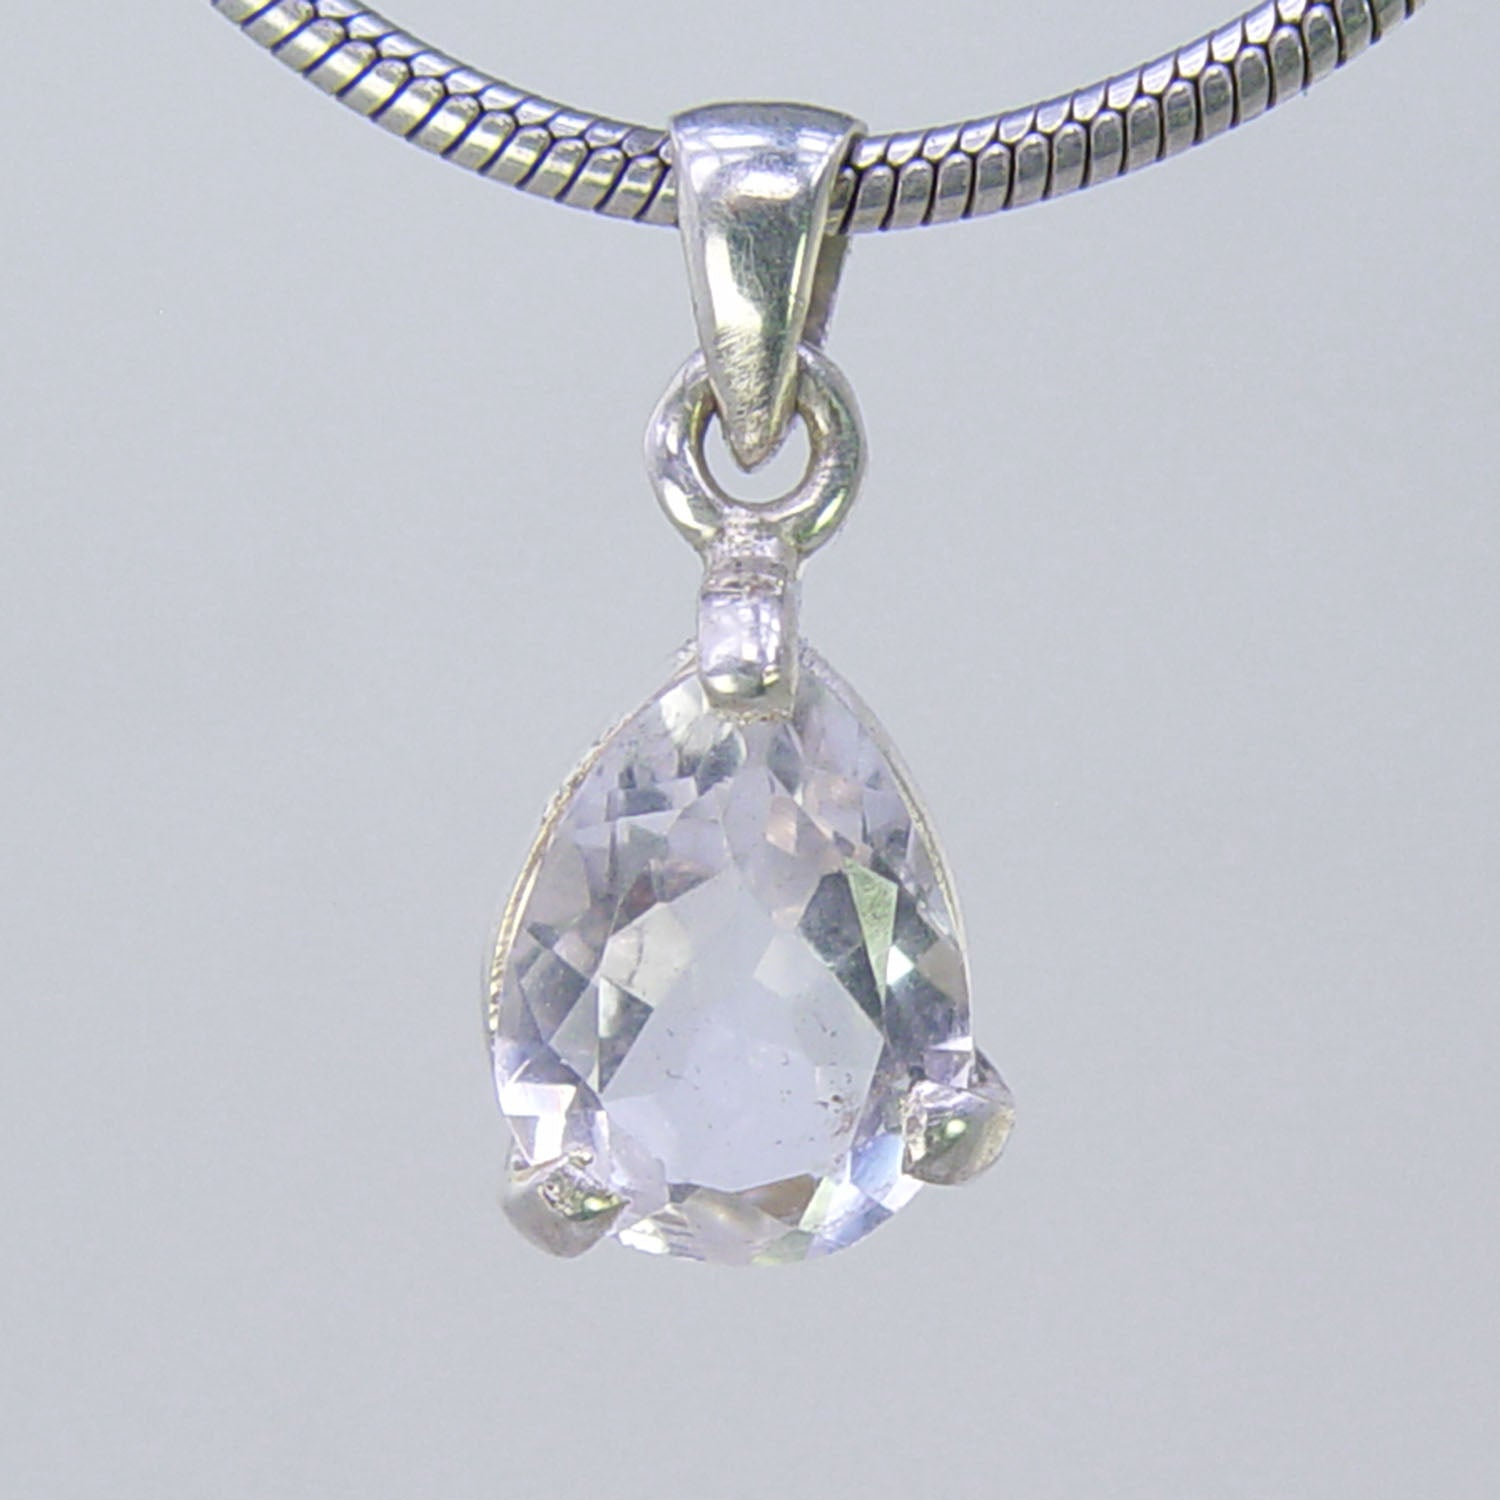 Crystal Quartz  3 ct Faceted Pear Shape Sterling Silver Pendant